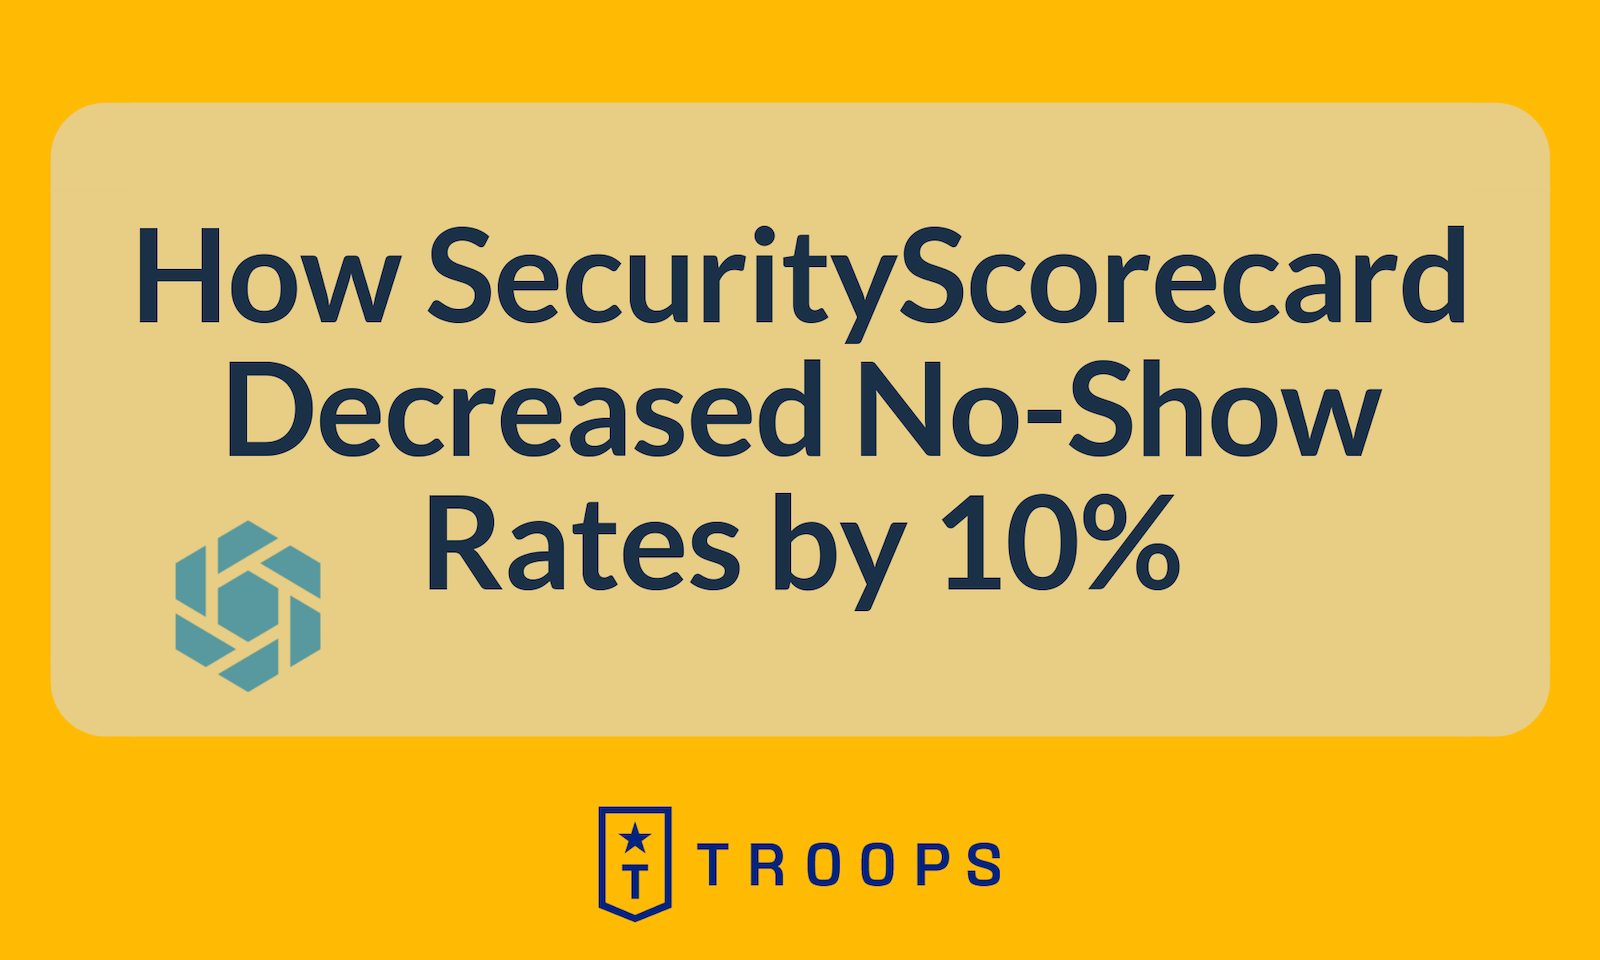 How SecurityScorecard Decreased No-Show Rates by 10%